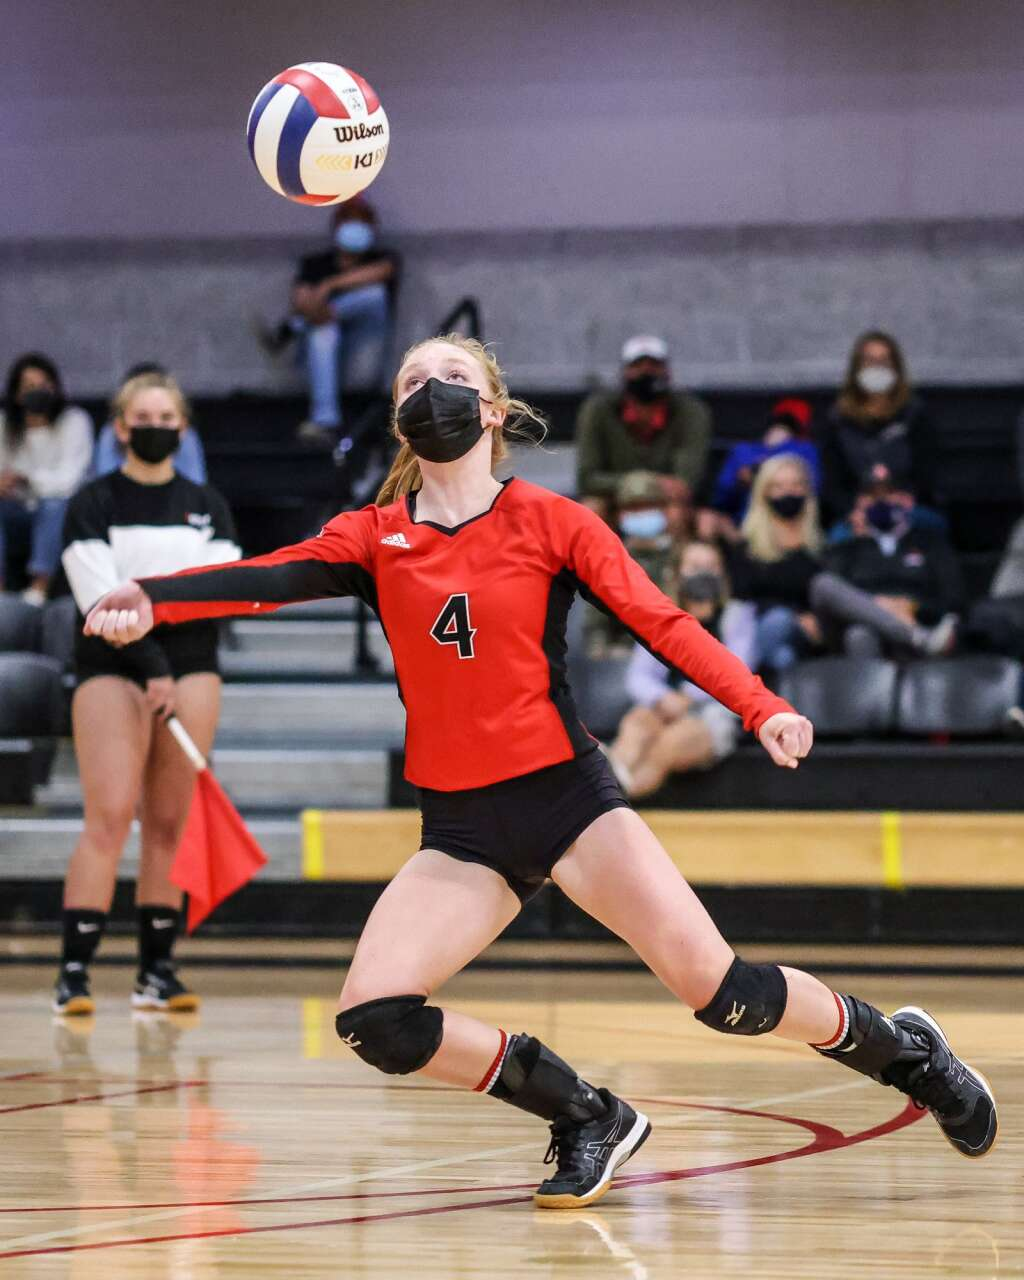 Aspen High School's Reese Leonard reaches for the ball as the AHS volleyball team hosts Glenwood Springs on Thursday, Aug. 19, 2021, inside the AHS gymnasium. The Skiers won, 3-2. Photo by Austin Colbert/The Aspen Times.